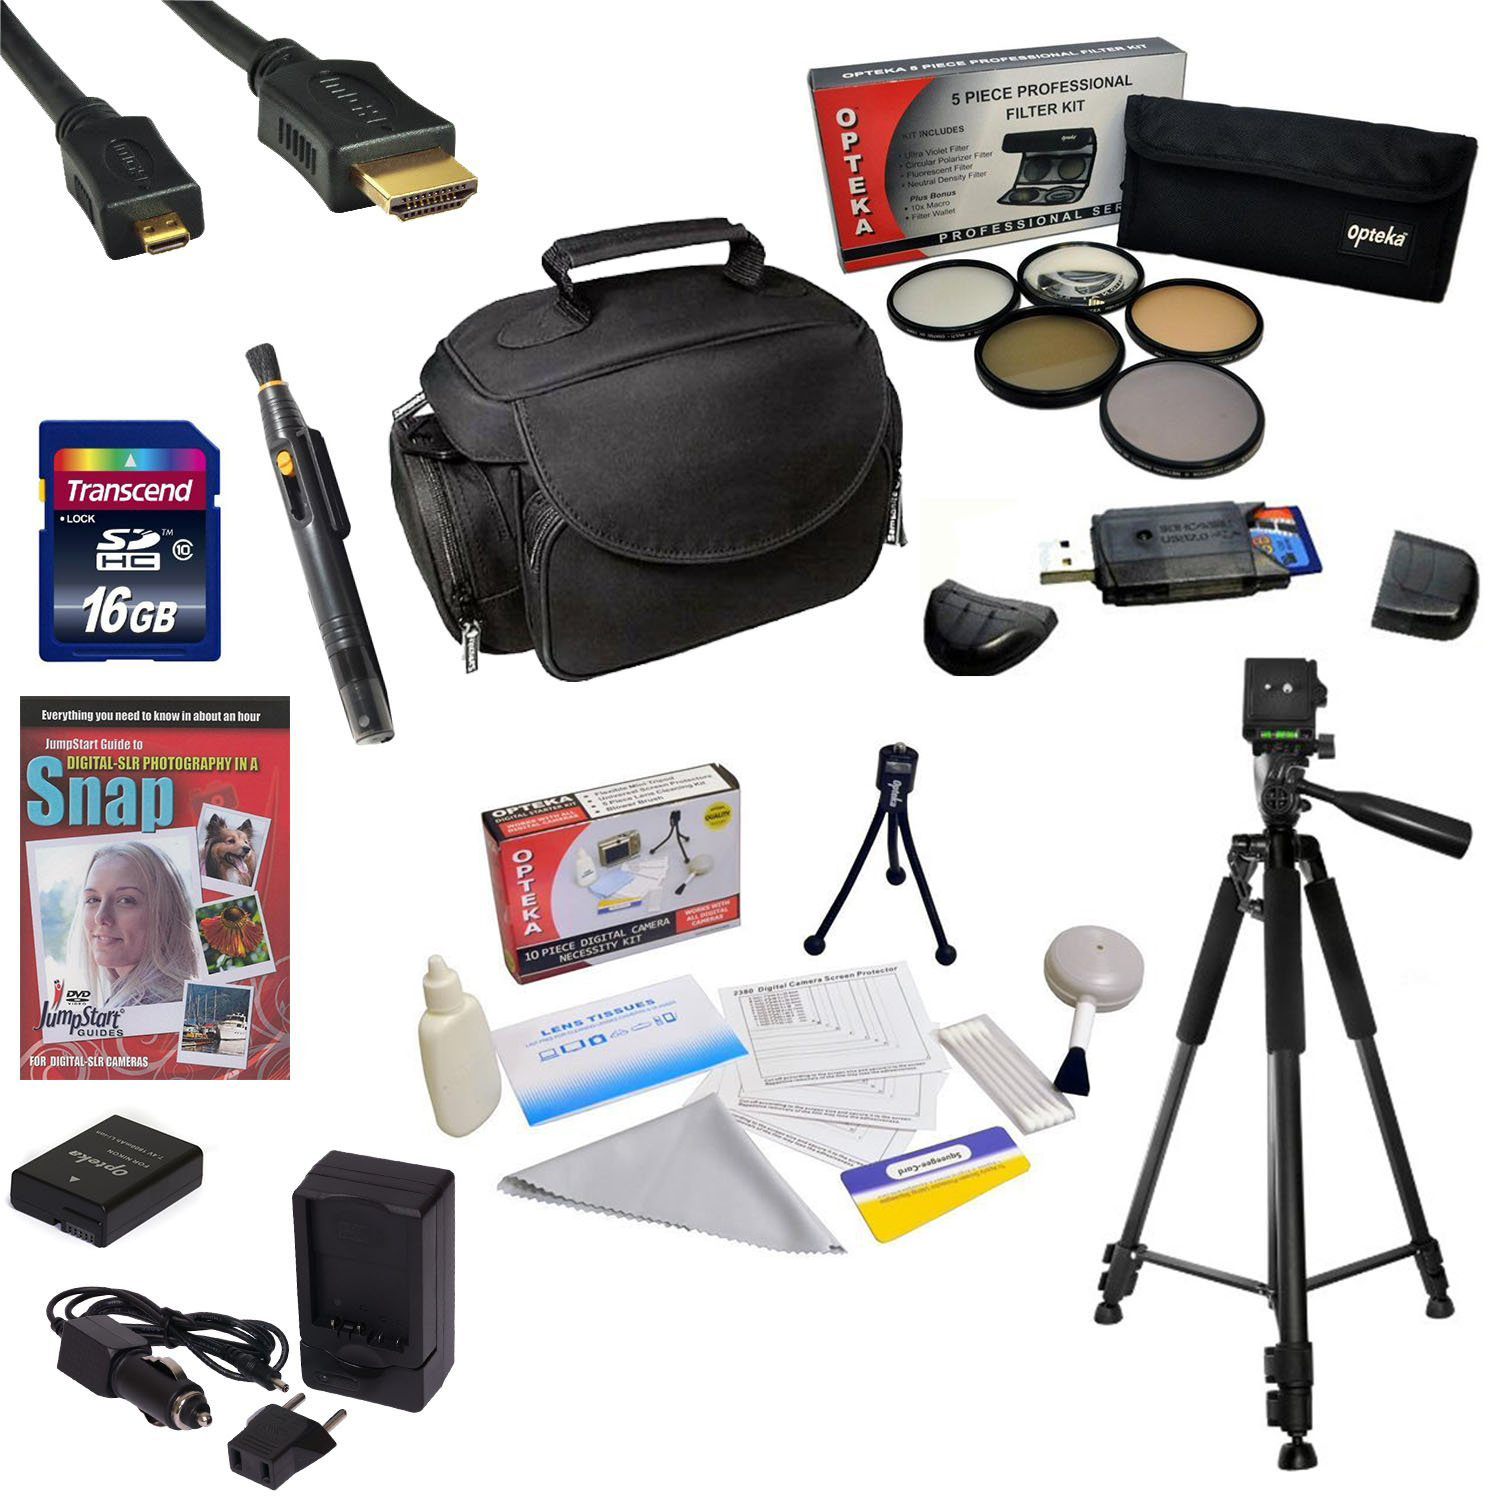 Best Value Kit for Nikon D40, D40X, D60, D3000, D5000 with 16GB SDHC Card, Extra Battery, Charger, 5 PC Filter Kit, HDMI Cable, Case, Tripod, Lens Pen, Cleaning Kit, DSLR DVD